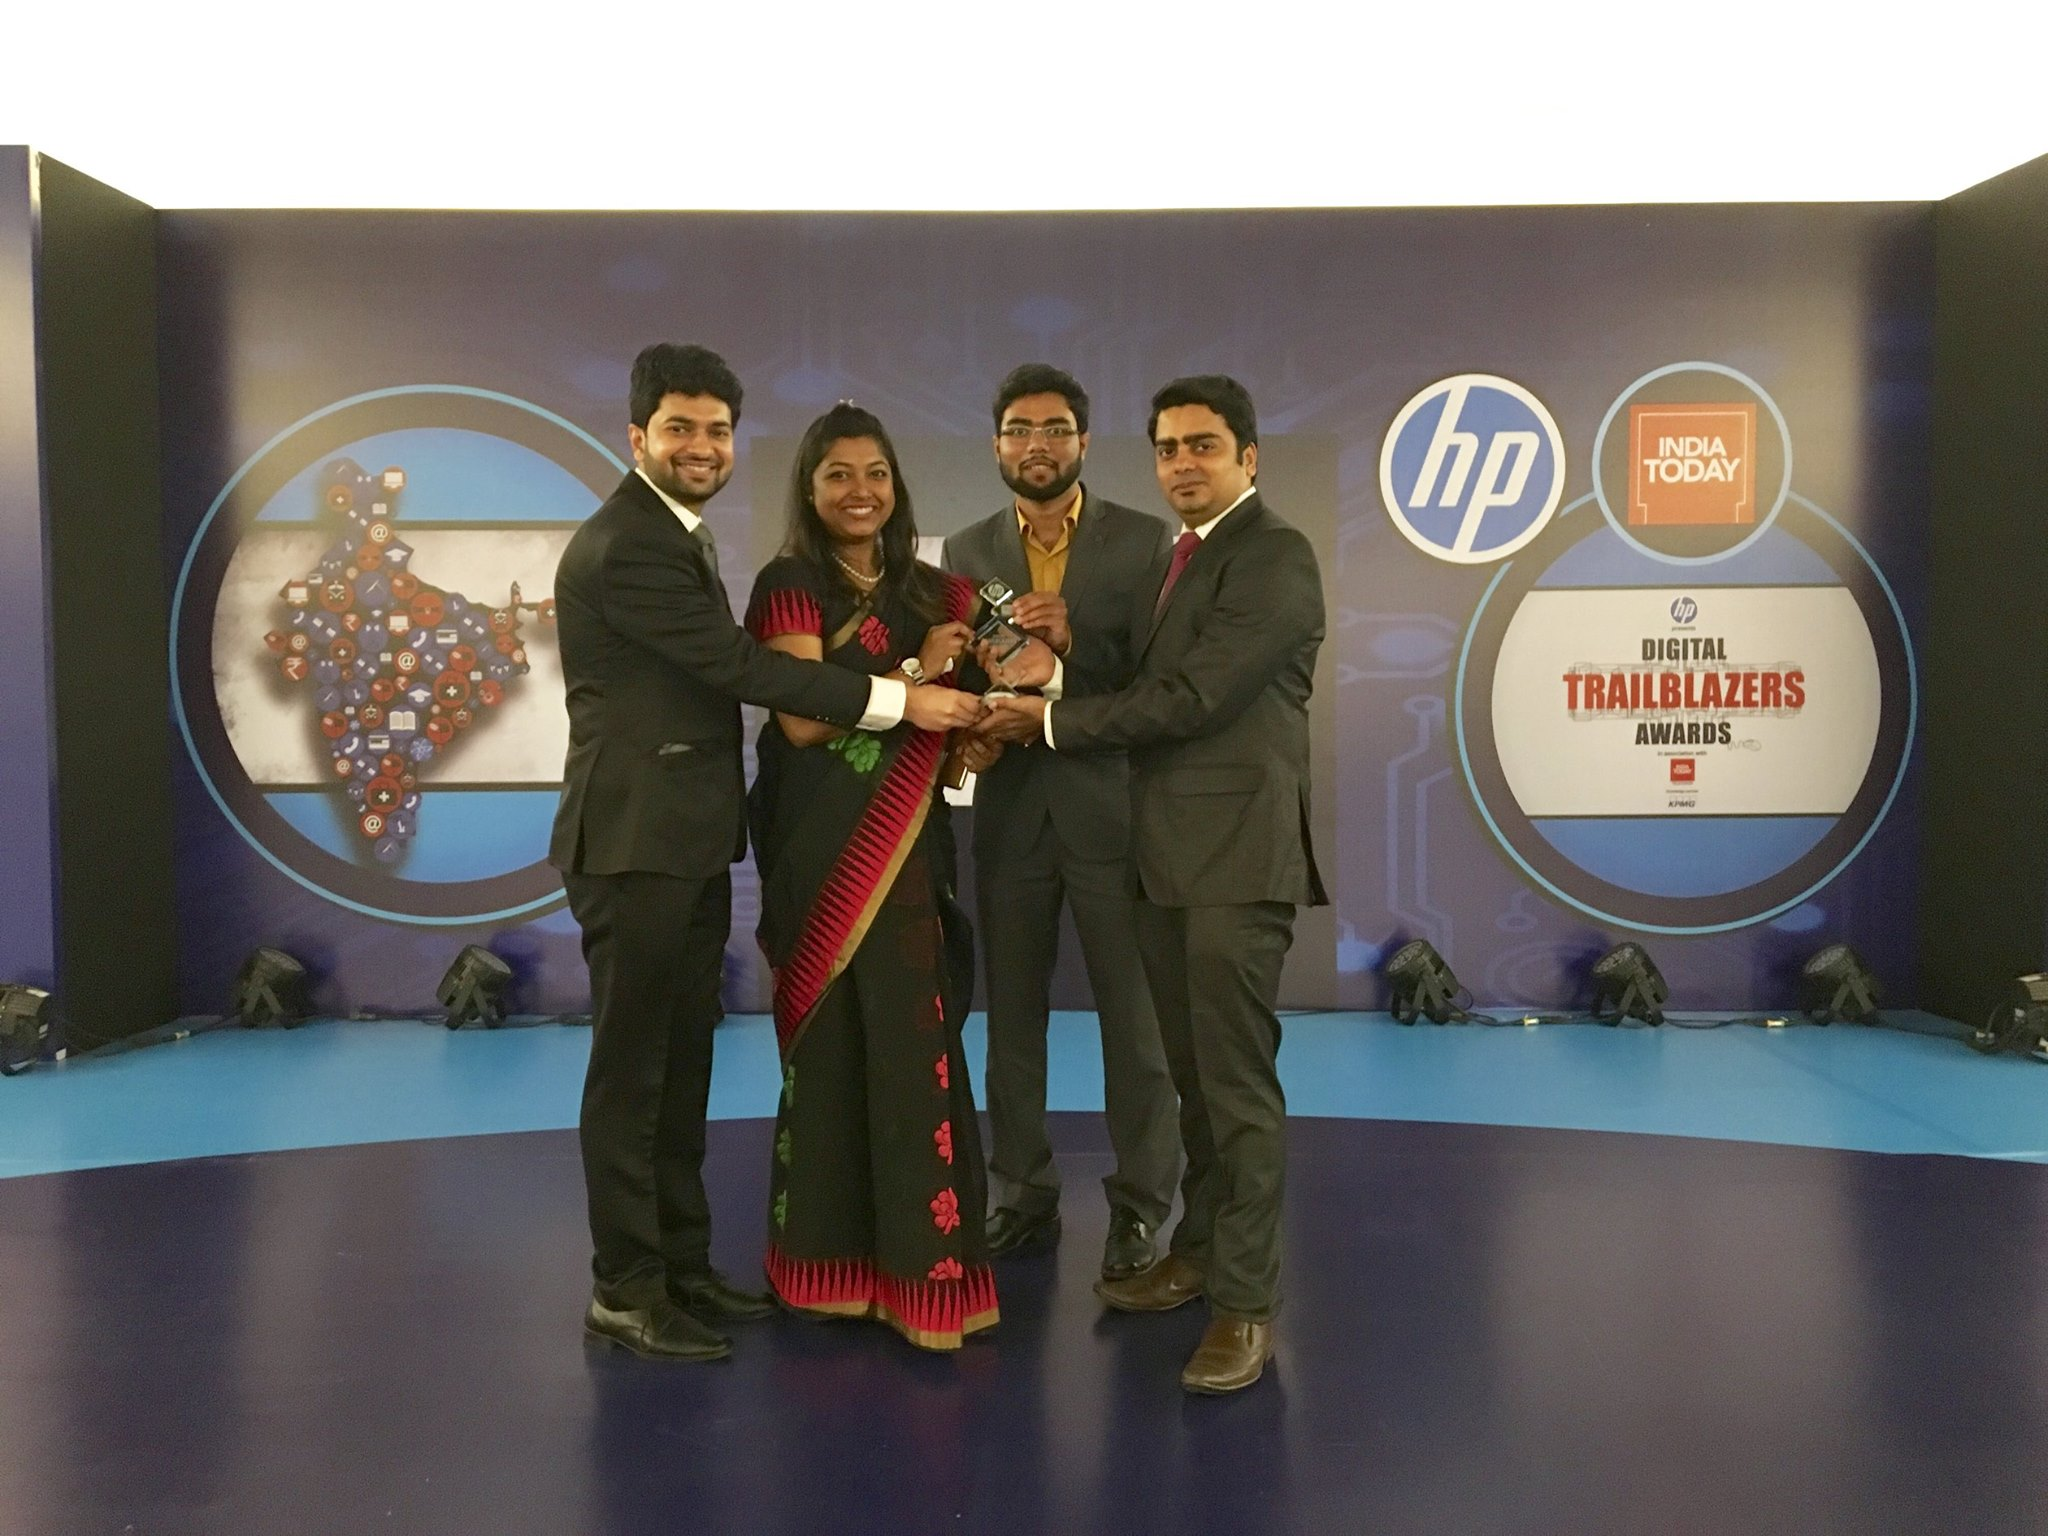 Form Left to Right - Gaurav, Rimi, Shaswat and Vaibhav Posing for Photo on the Stage at Digital TrailBlazers Award Ceremony